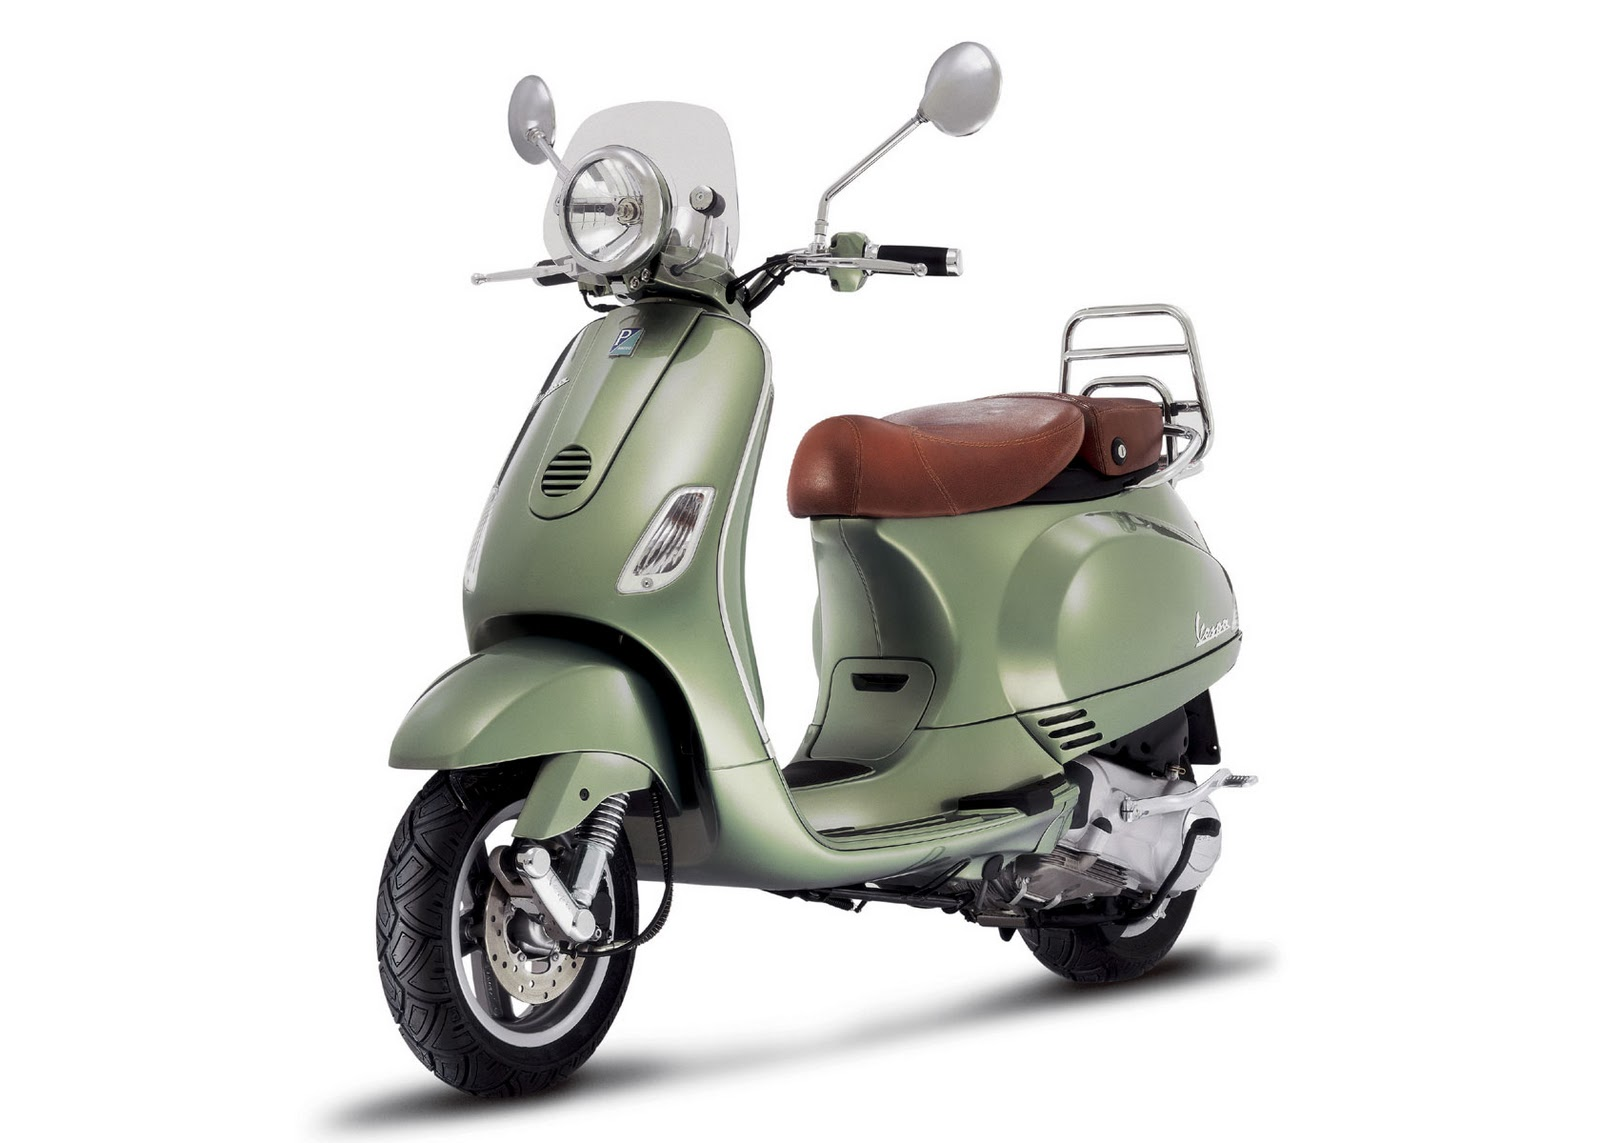 motorcycle pictures vespa lxv 125 2009 europe. Black Bedroom Furniture Sets. Home Design Ideas